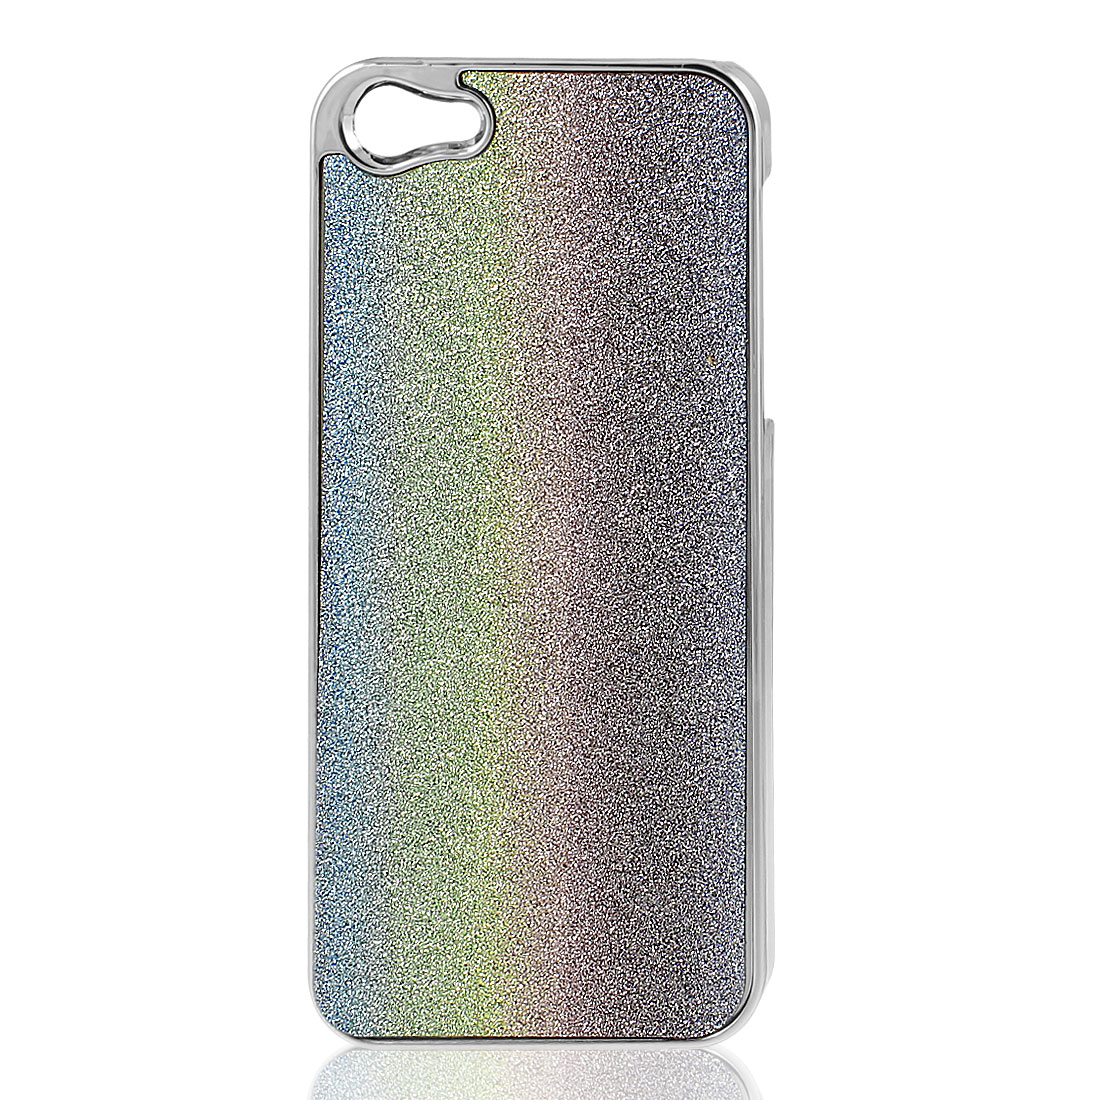 Colorful Bling Glittery Hard Plastic Back Case Cover for iPhone 5 5G